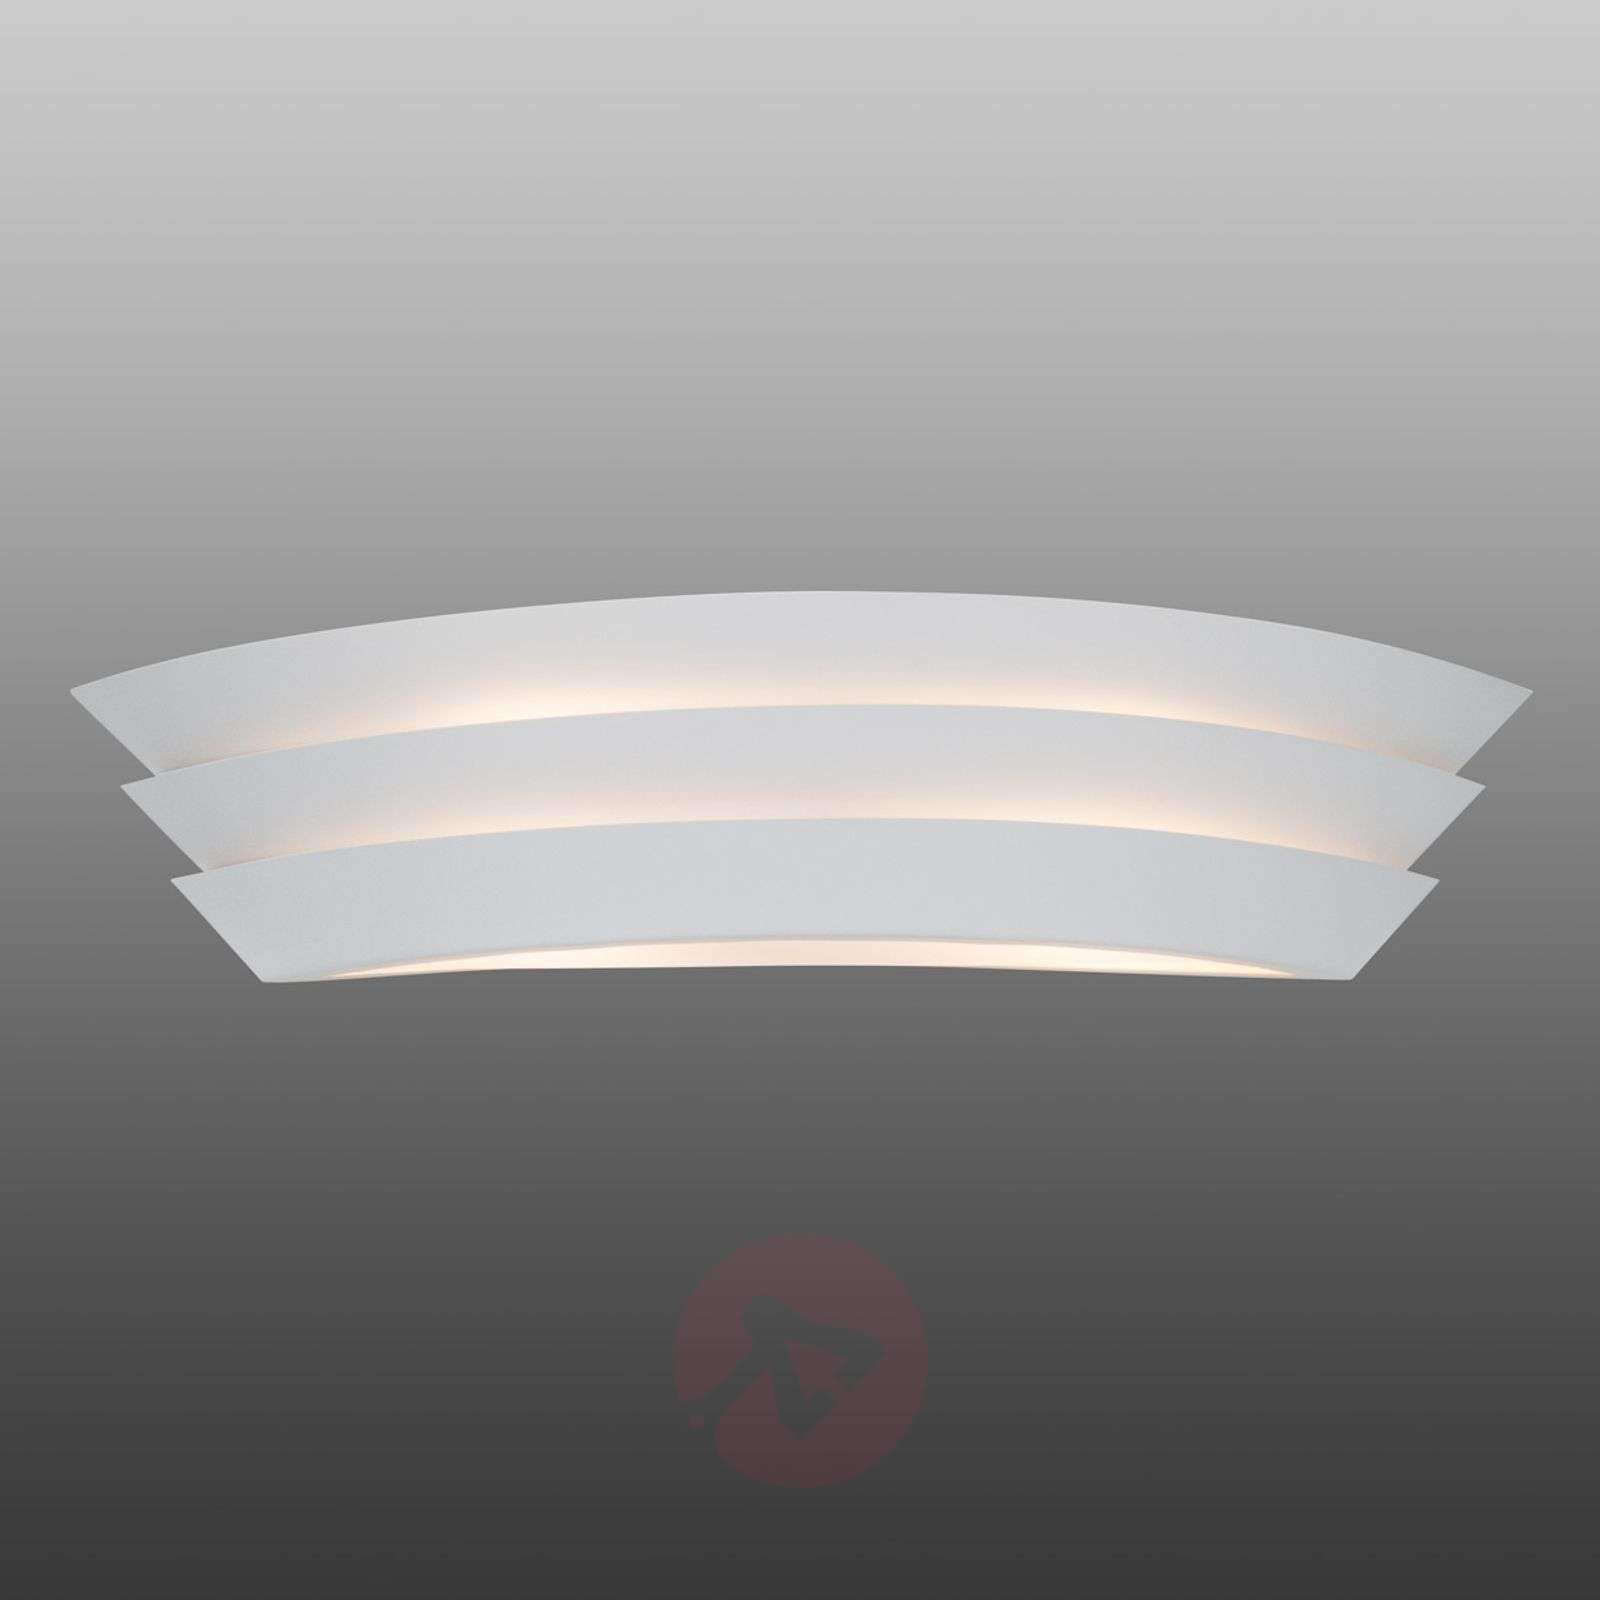 wall lighting effects. Ship Wall Light With Beautiful Lighting Effects-1508947-01 Effects